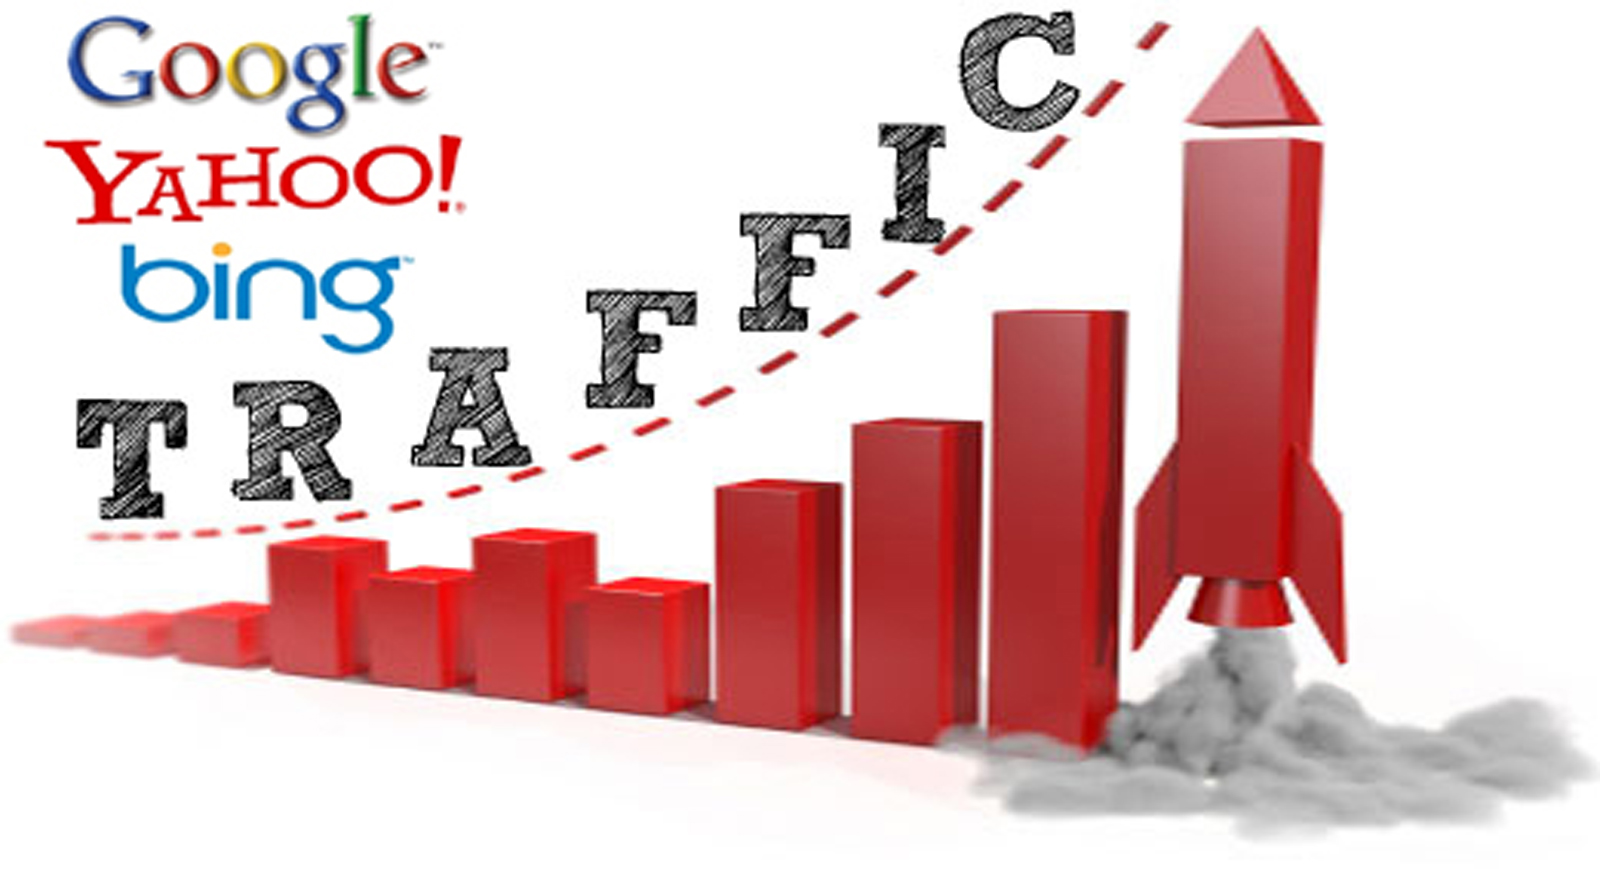 How Much Traffic Should You be Getting with Search to be Successful?